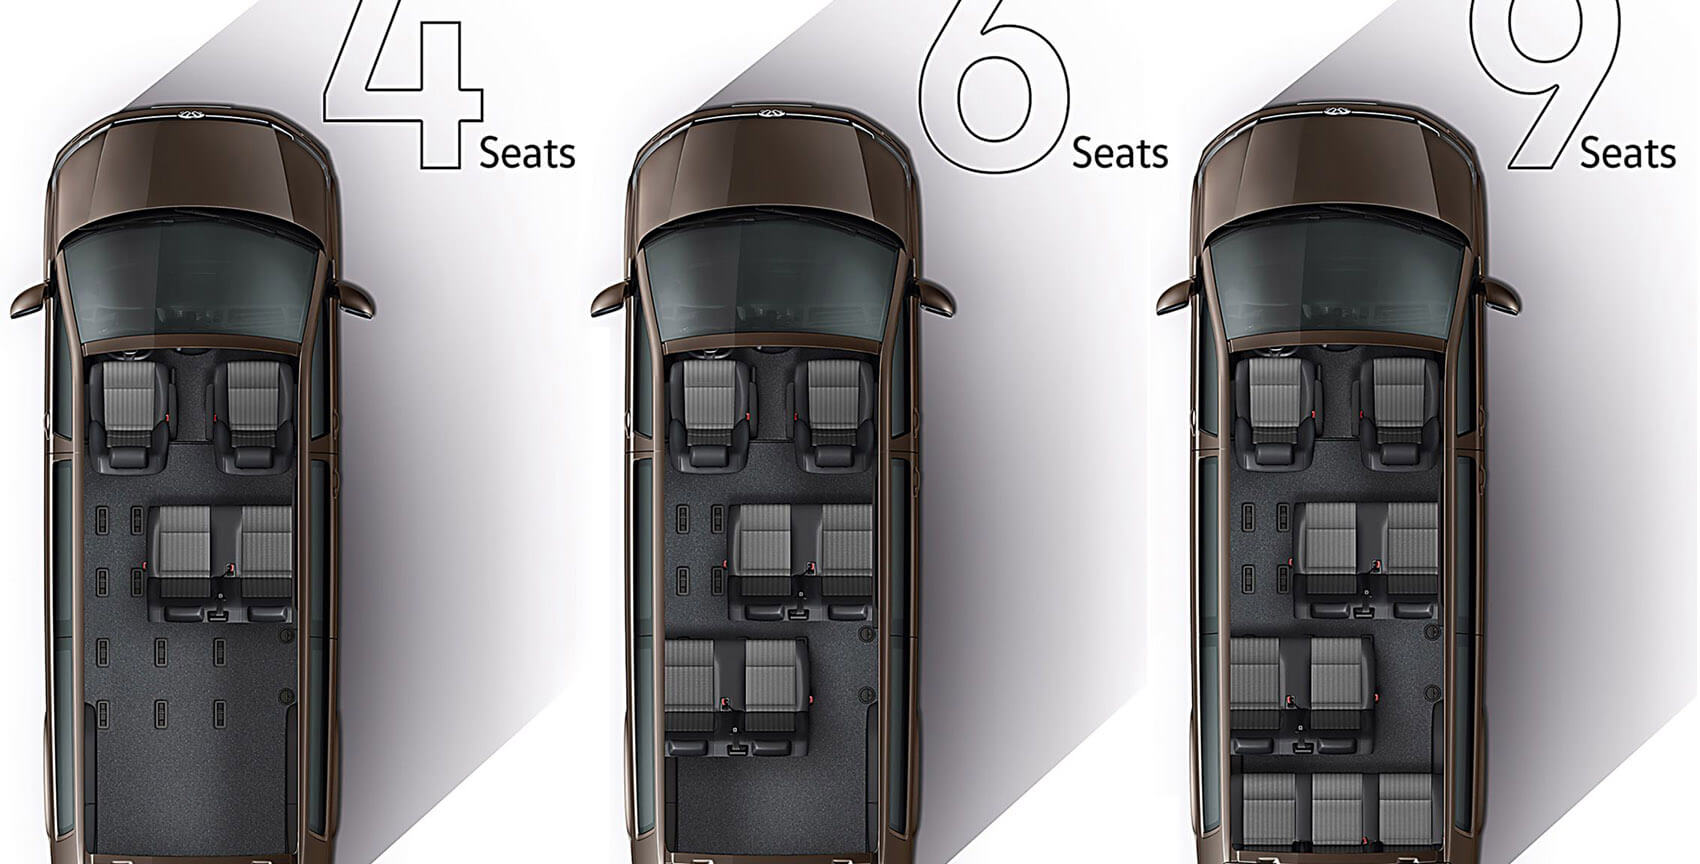 Pick ups made easy Seats Image